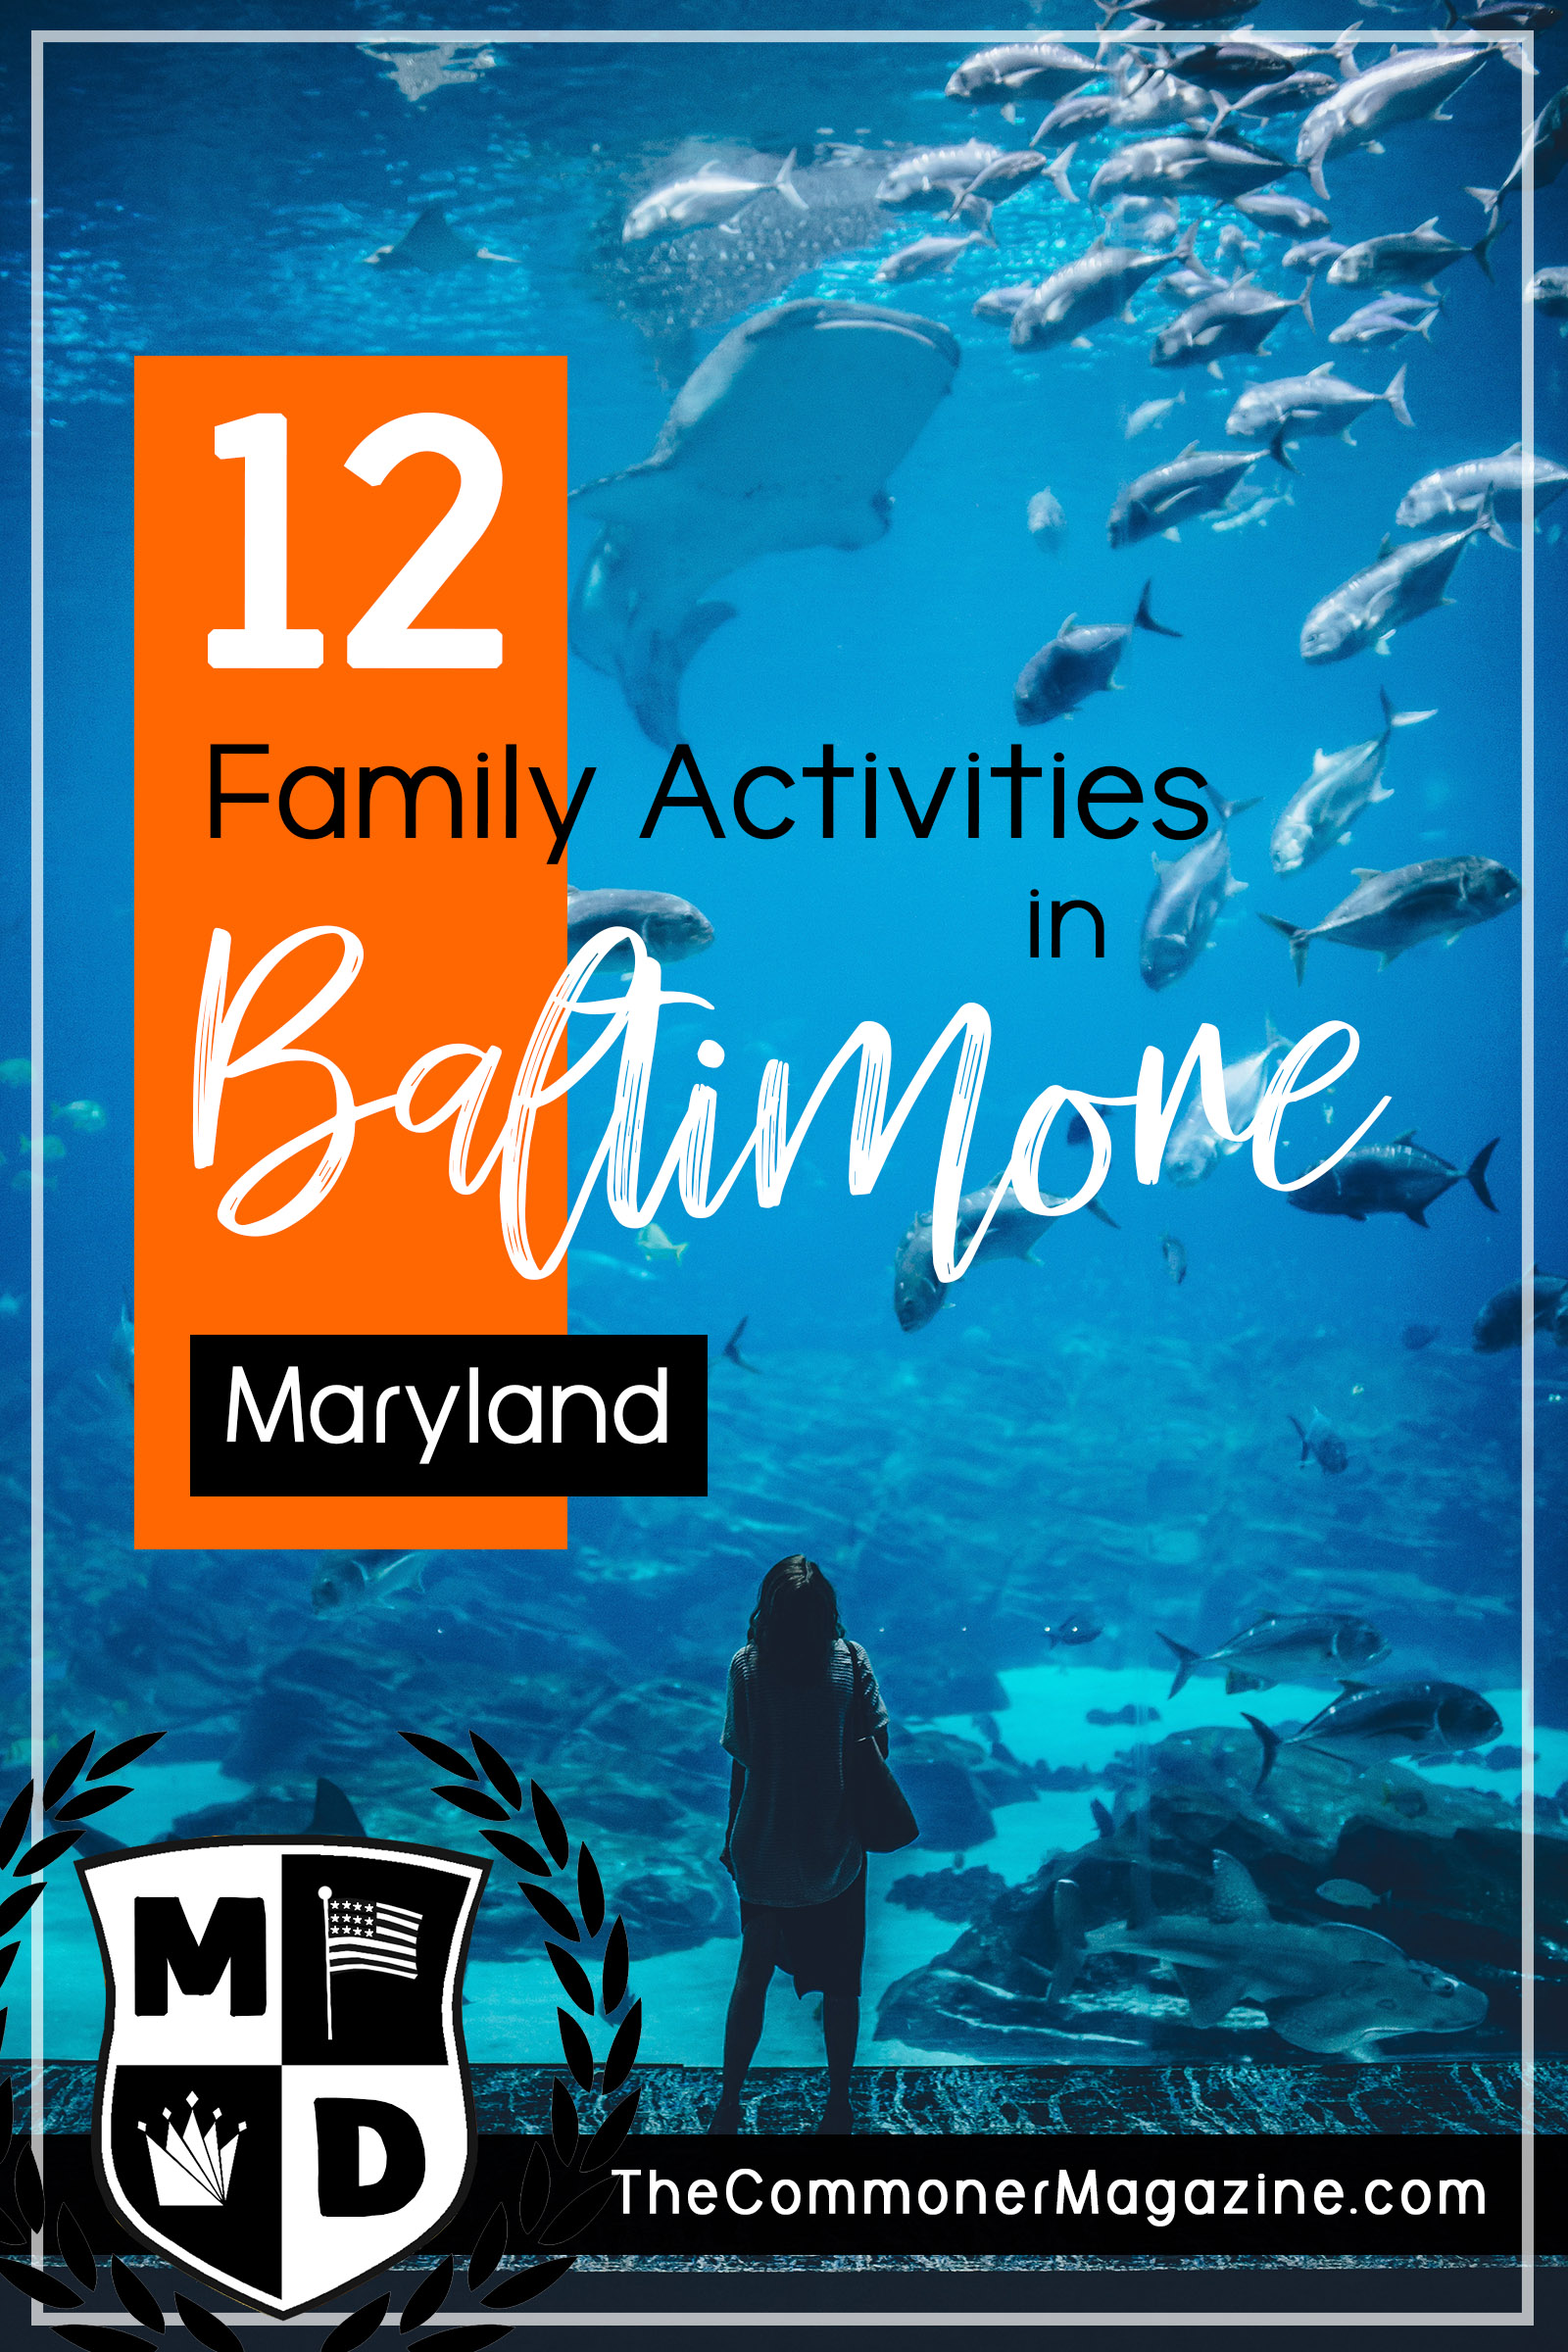 Looking for things to do in Baltimore? Here's a two-part series covering 12 fantastic, kid friendly activities for your next vacation to Charm City. From museums to the National Aquarium, there's something to do in every season. The Commoner Magazine, full of USA travel tips from local experts. #Baltimore #Maryland #ThingstodoinBaltimore #NationalAquarium #USAtravel #Familytravel #travelwithkids #kidsactivities #USAeastcoast #eastcoasttravel